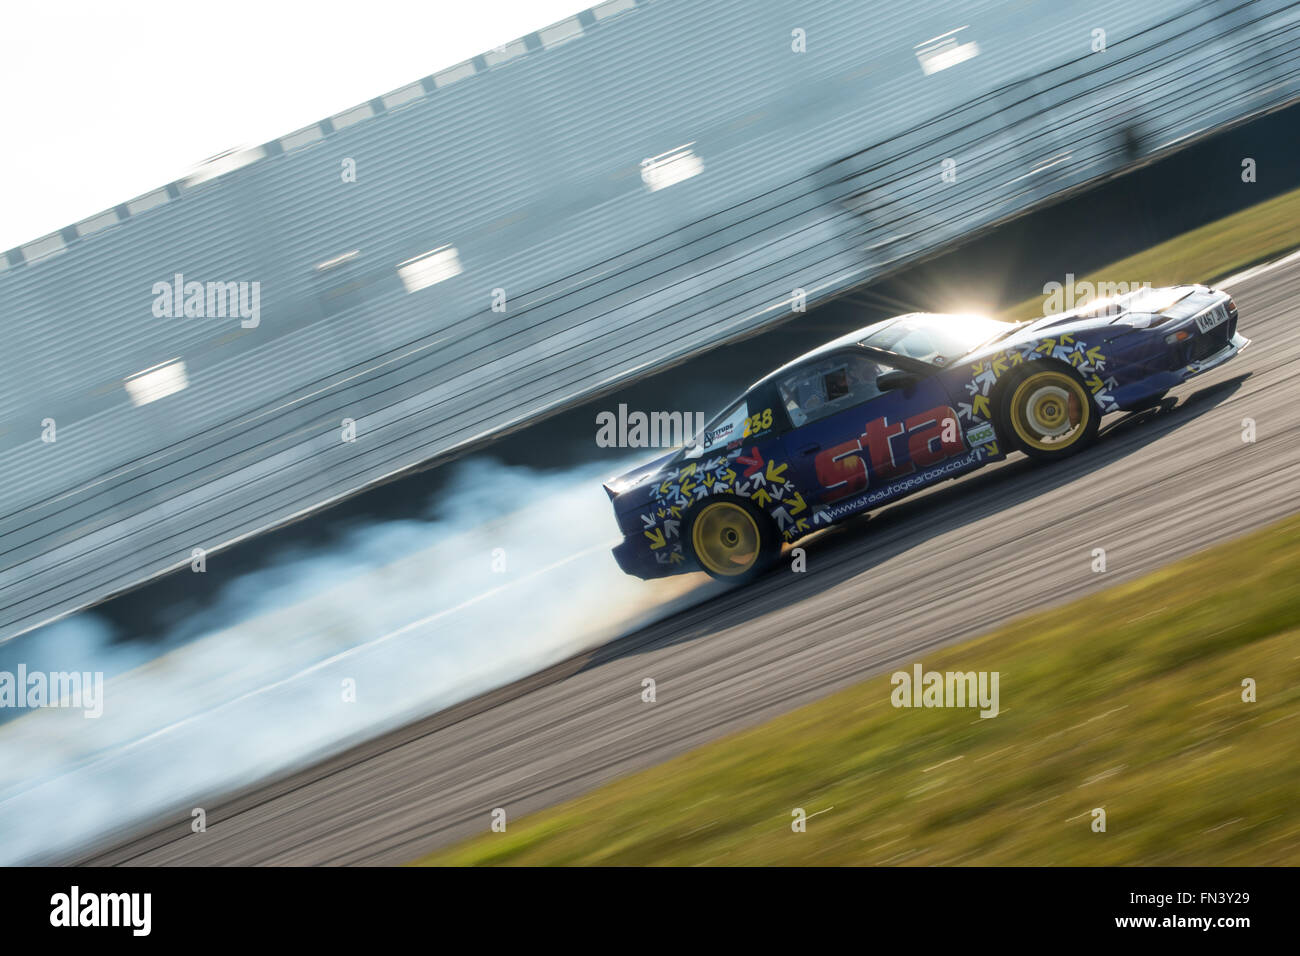 Drift car during Drift Matsuri at Rockingham Motor Speedway on March 13, 2016 in Corby, Northamptonshire, United Kingdom. Credit: Gergo Toth/Alamy Live News